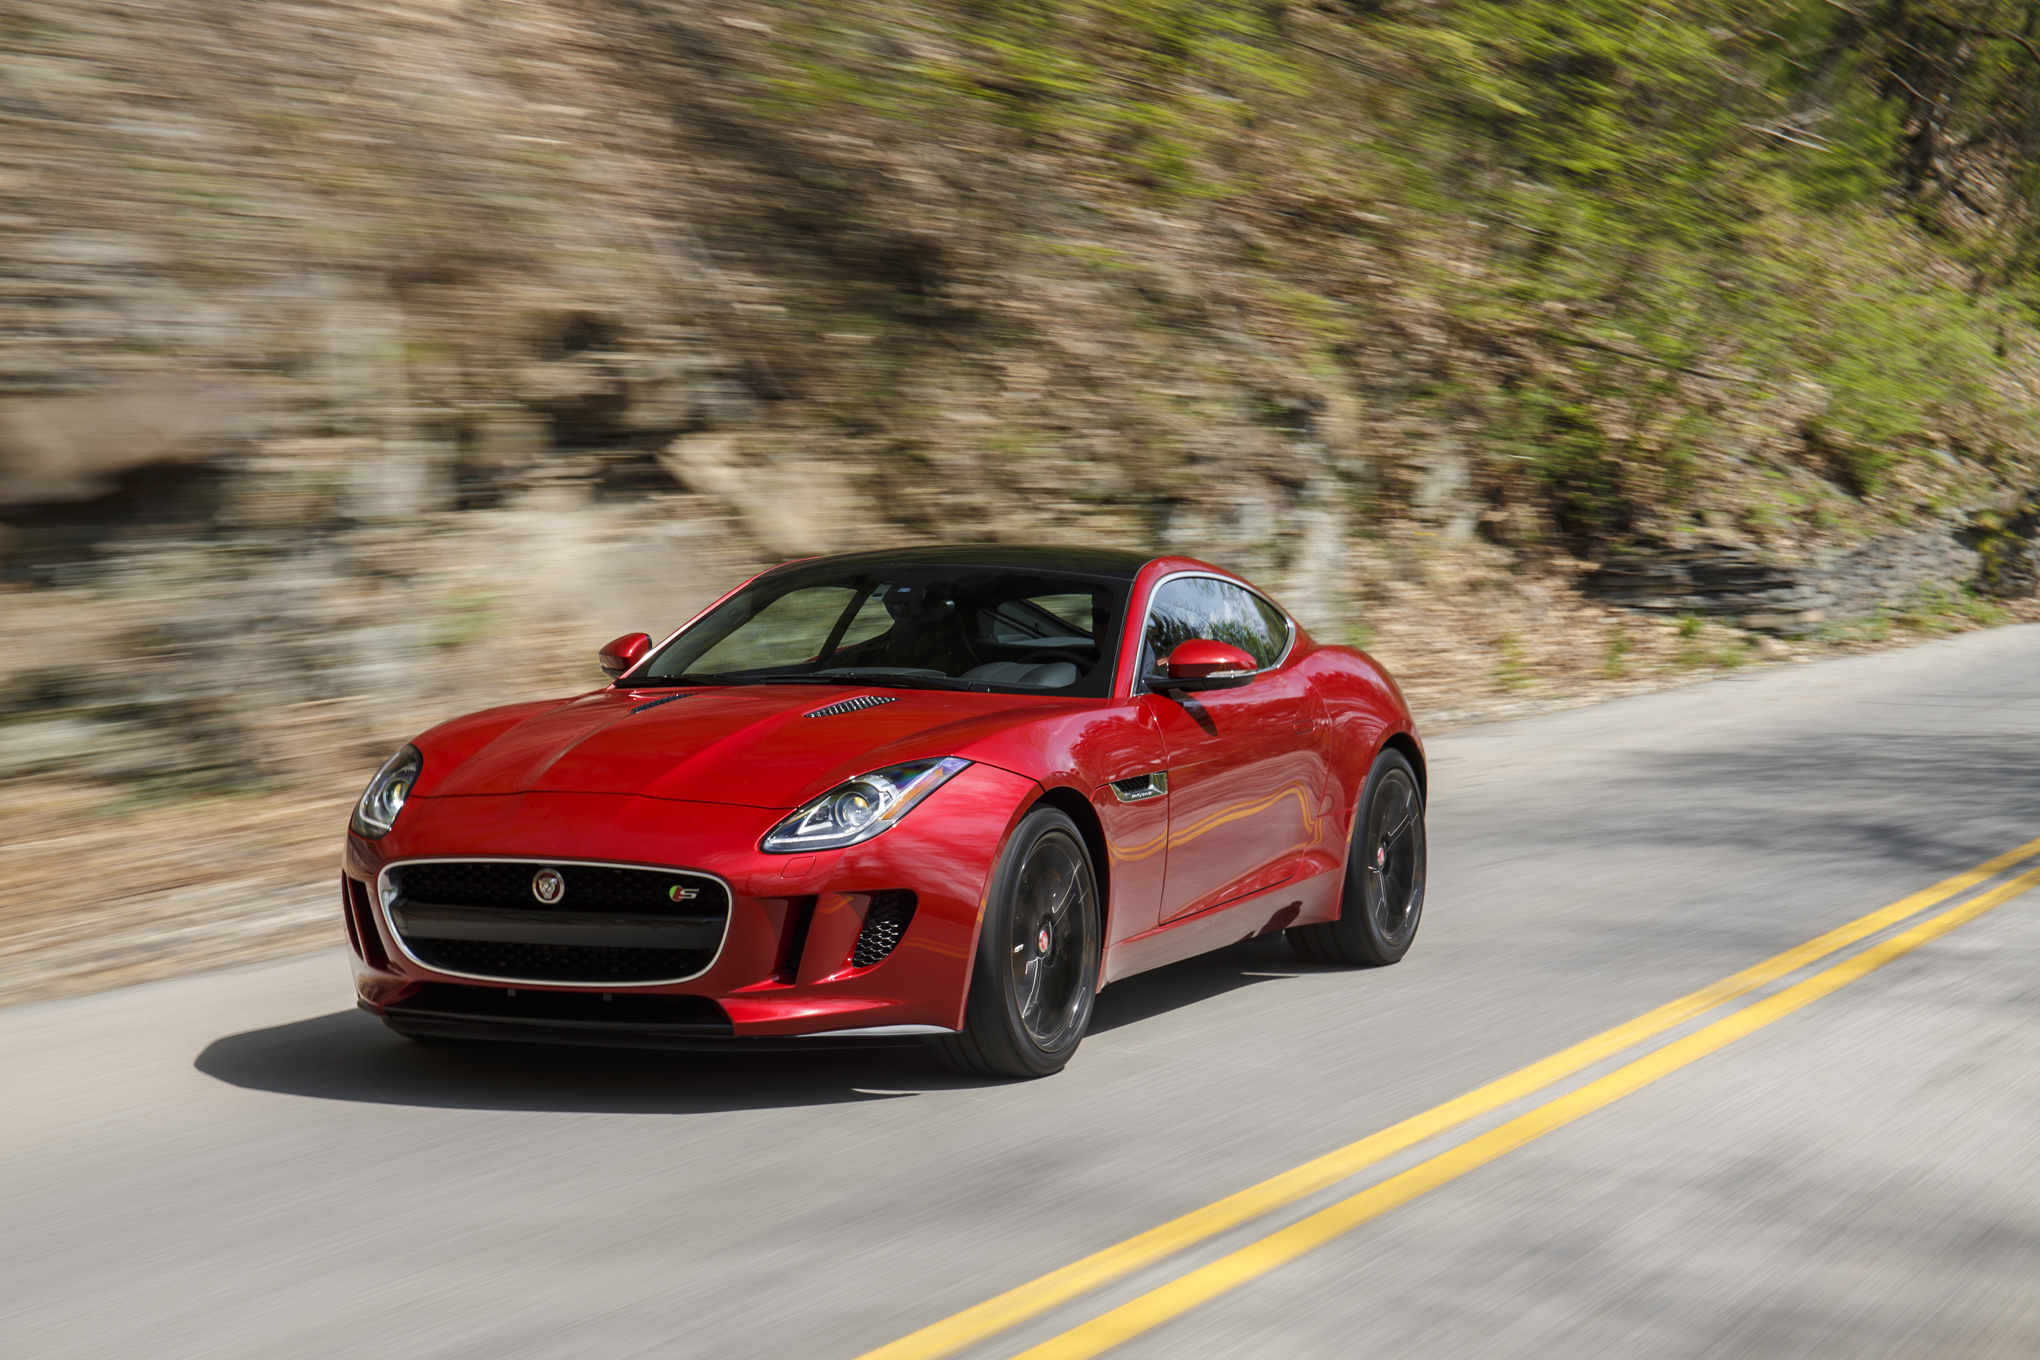 2016 jaguar f type second drive review [ 2040 x 1360 Pixel ]